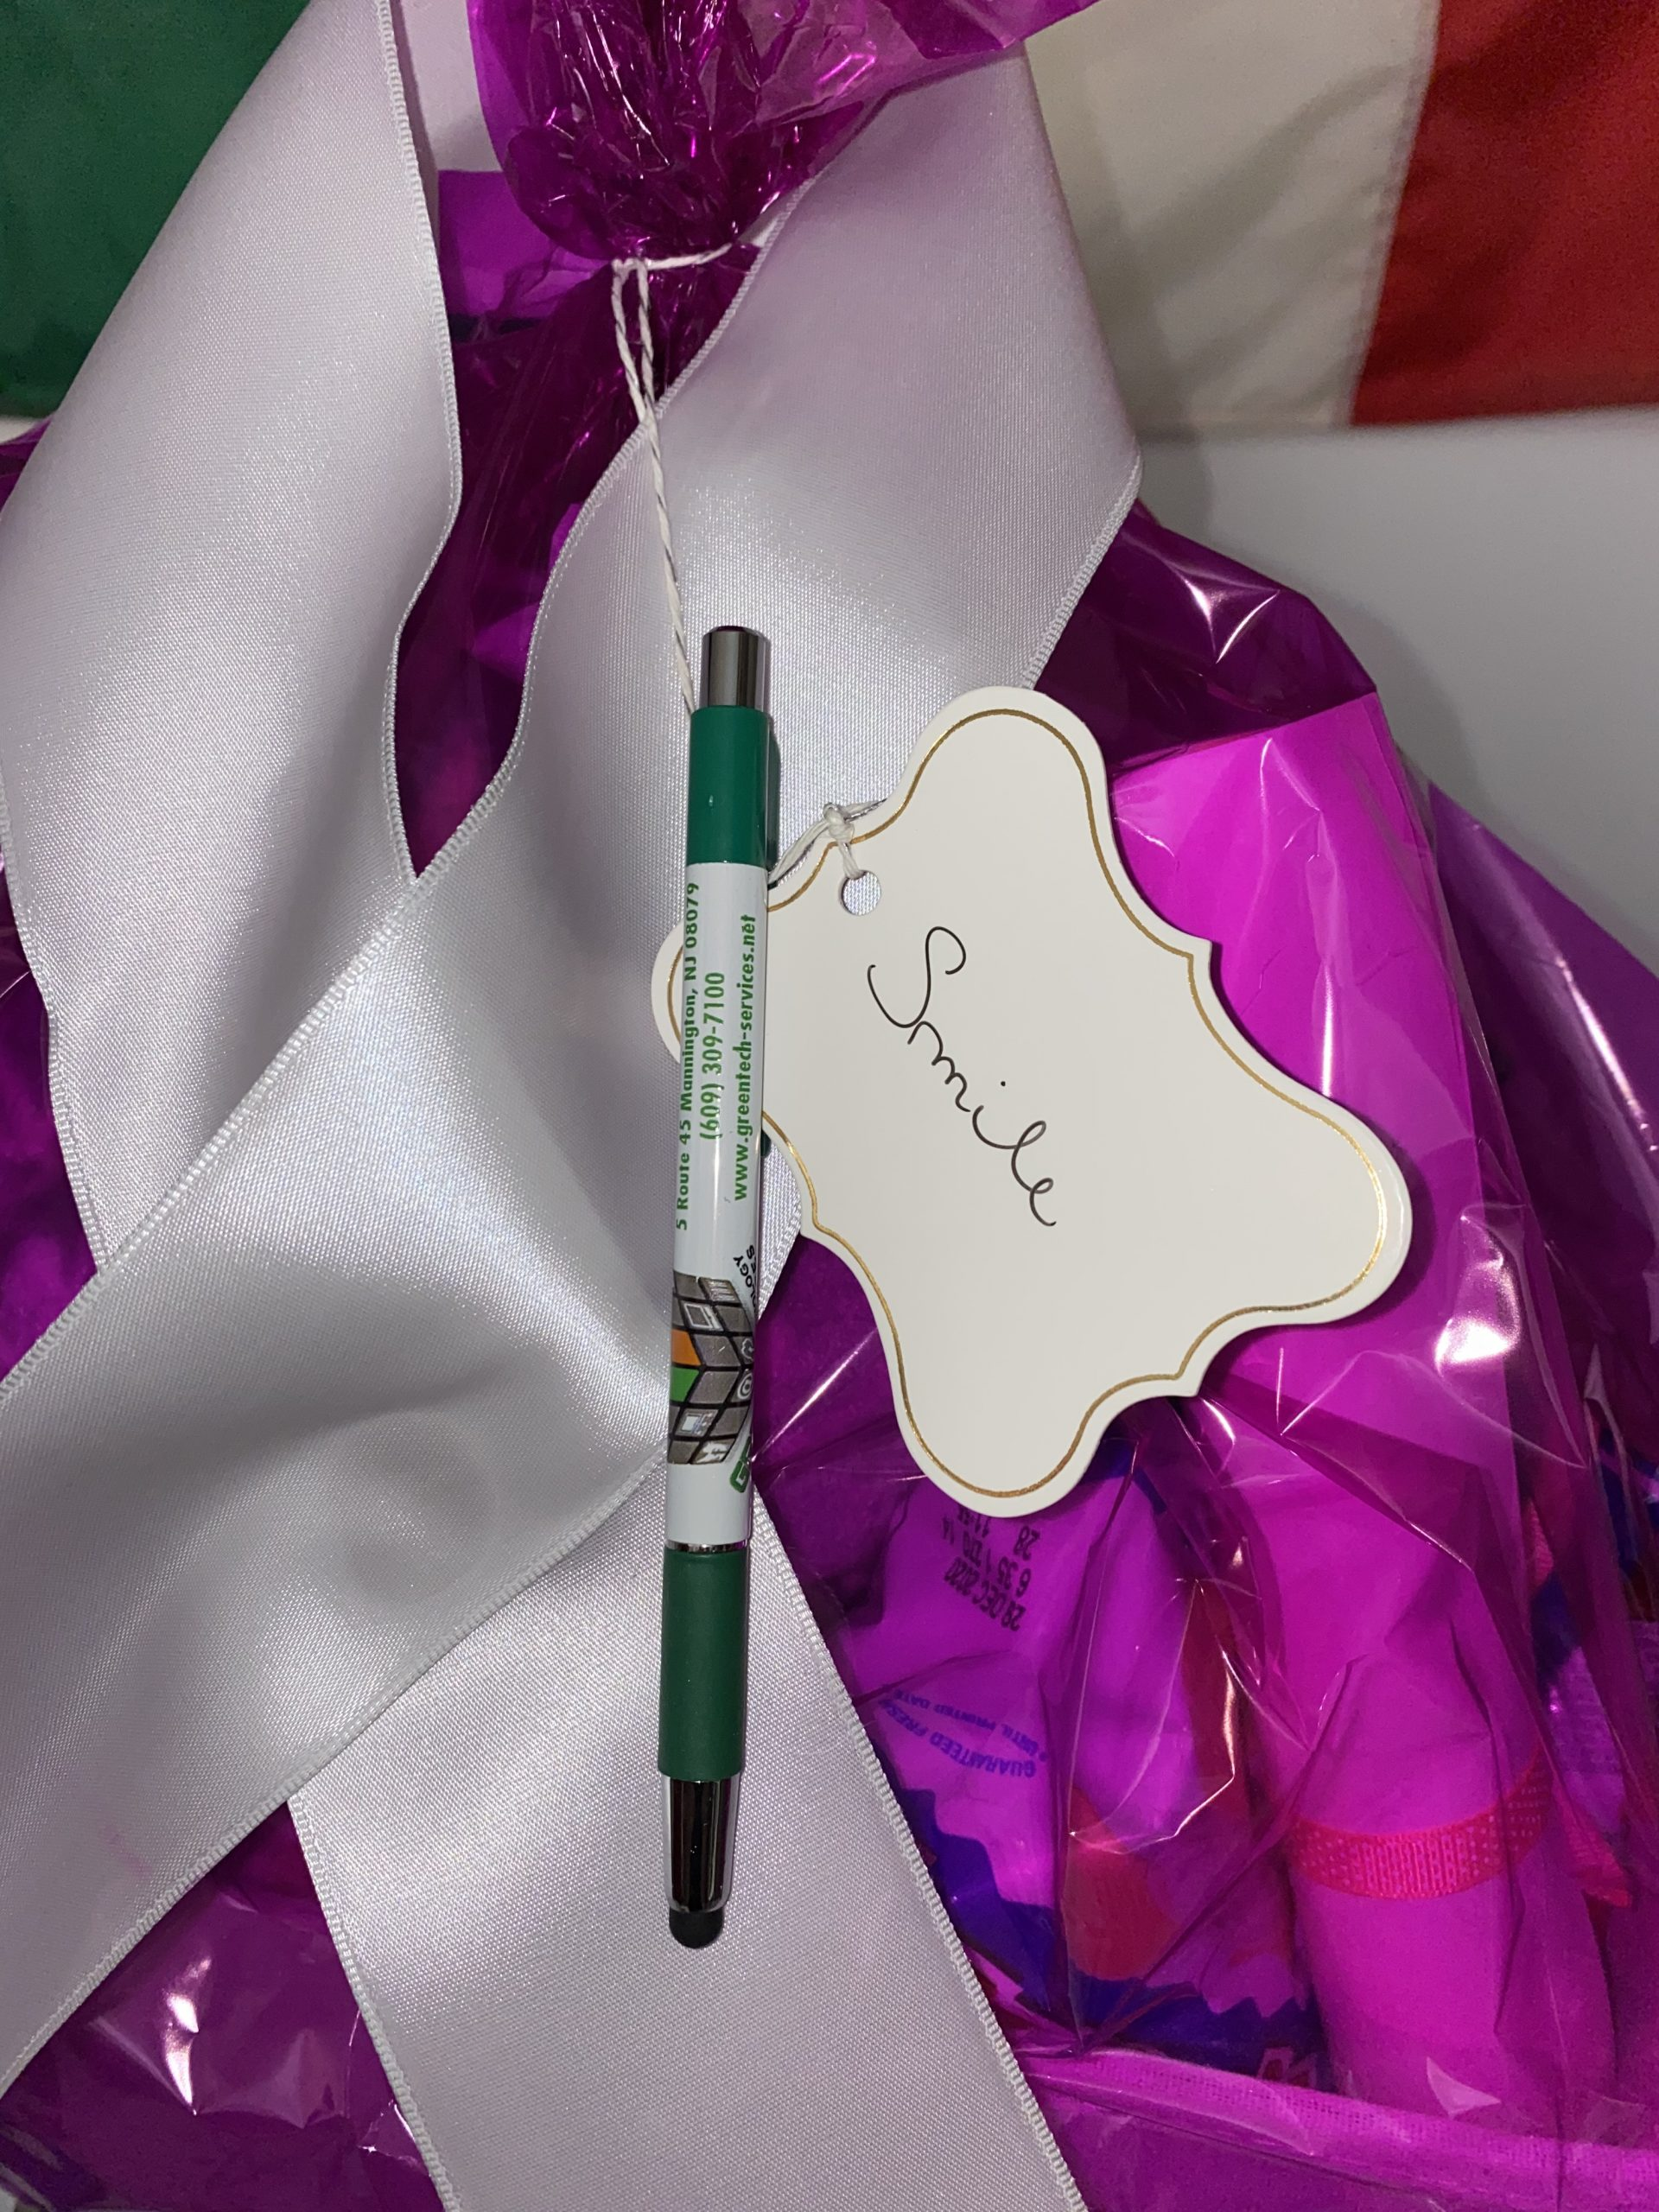 Closeup of Ribbon with company pen and tag saying Smile